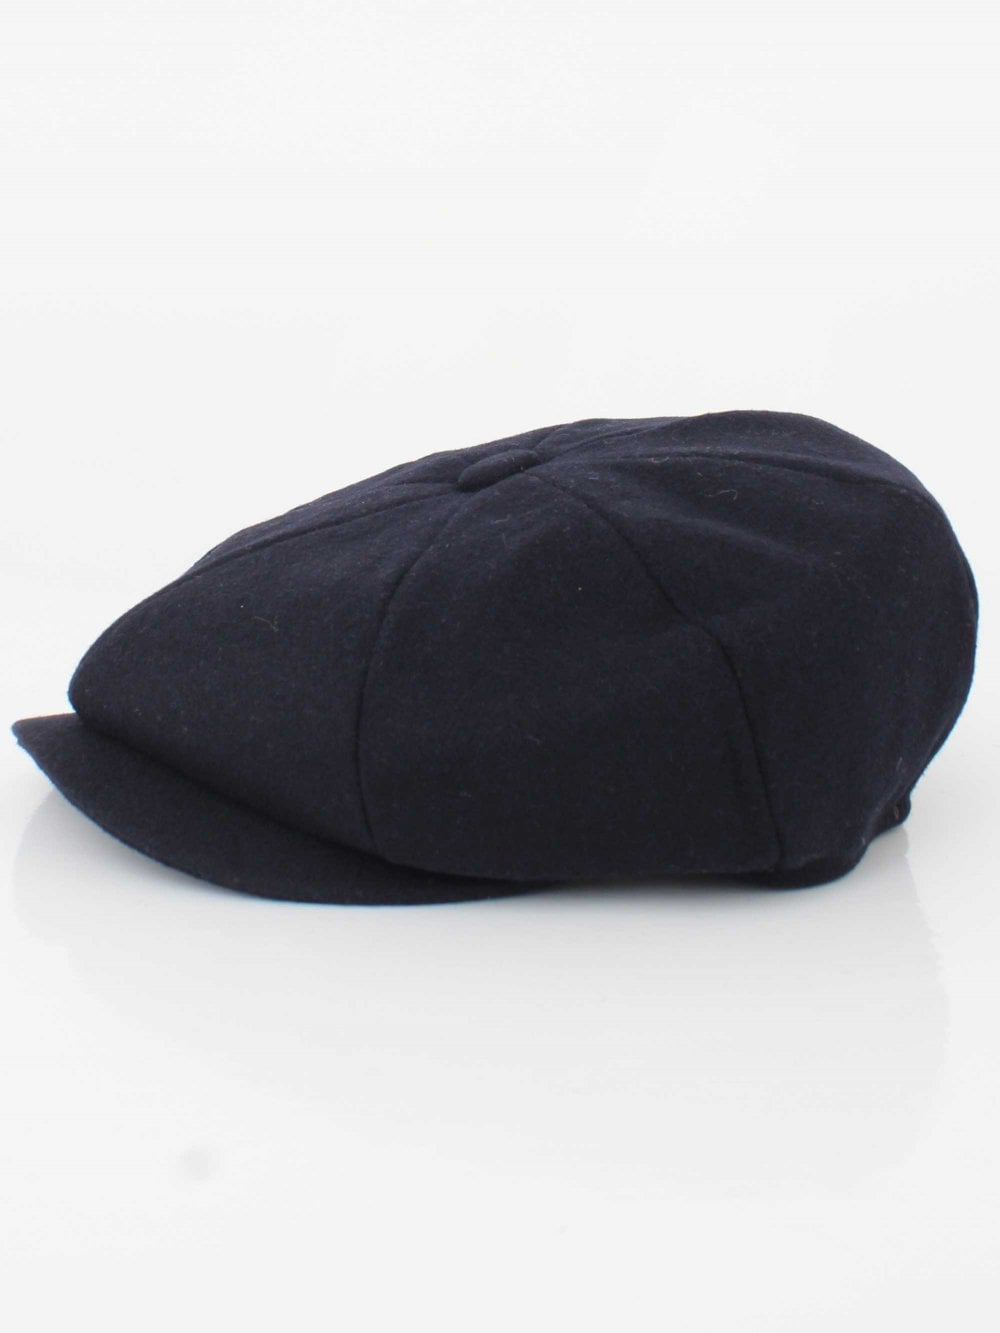 Barbour Melton Bakerboy Cap in Navy  8480d29b61a